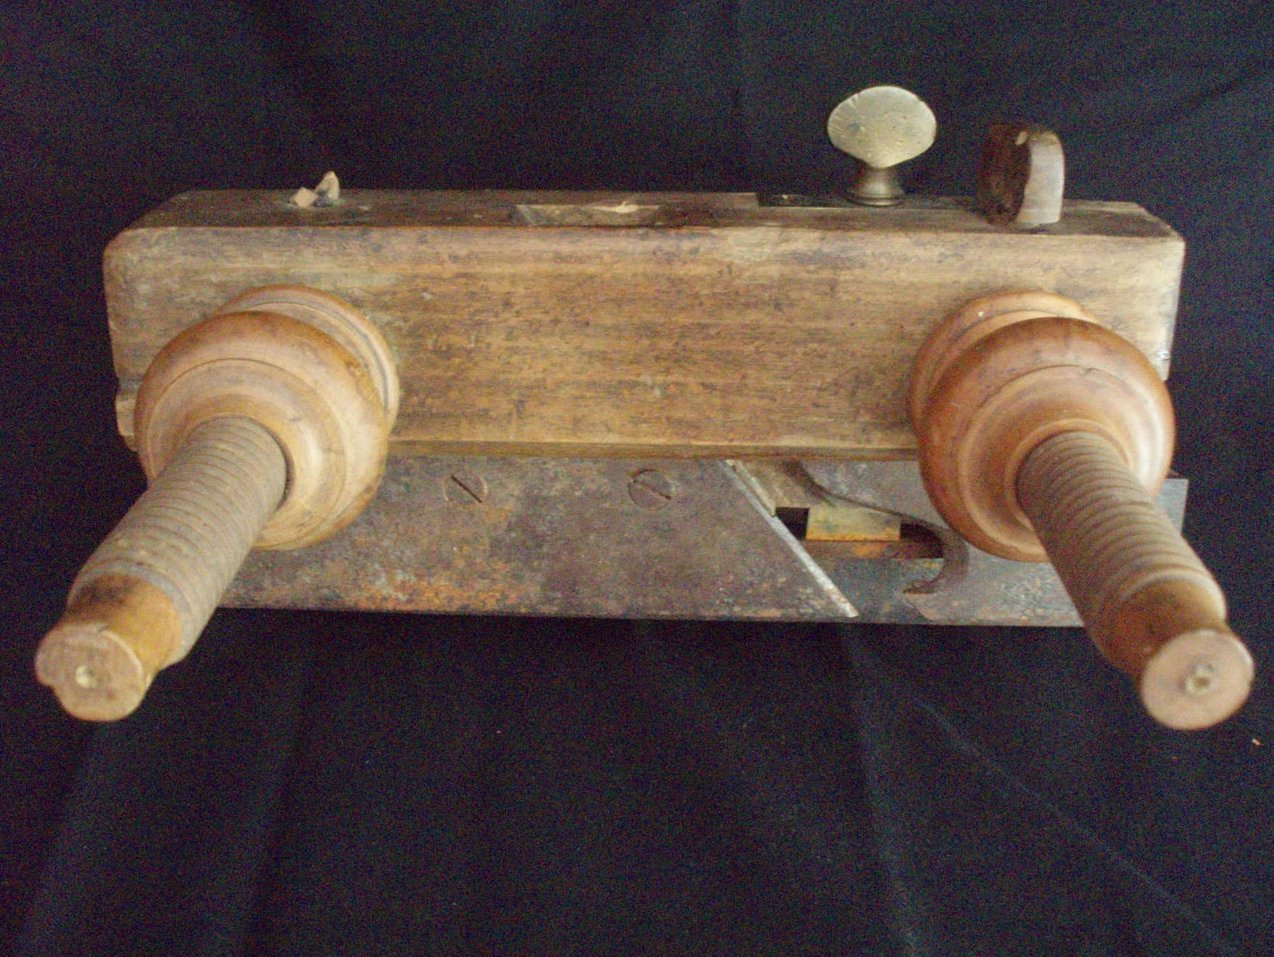 antique wood plow plane Kellogg or Chapin style